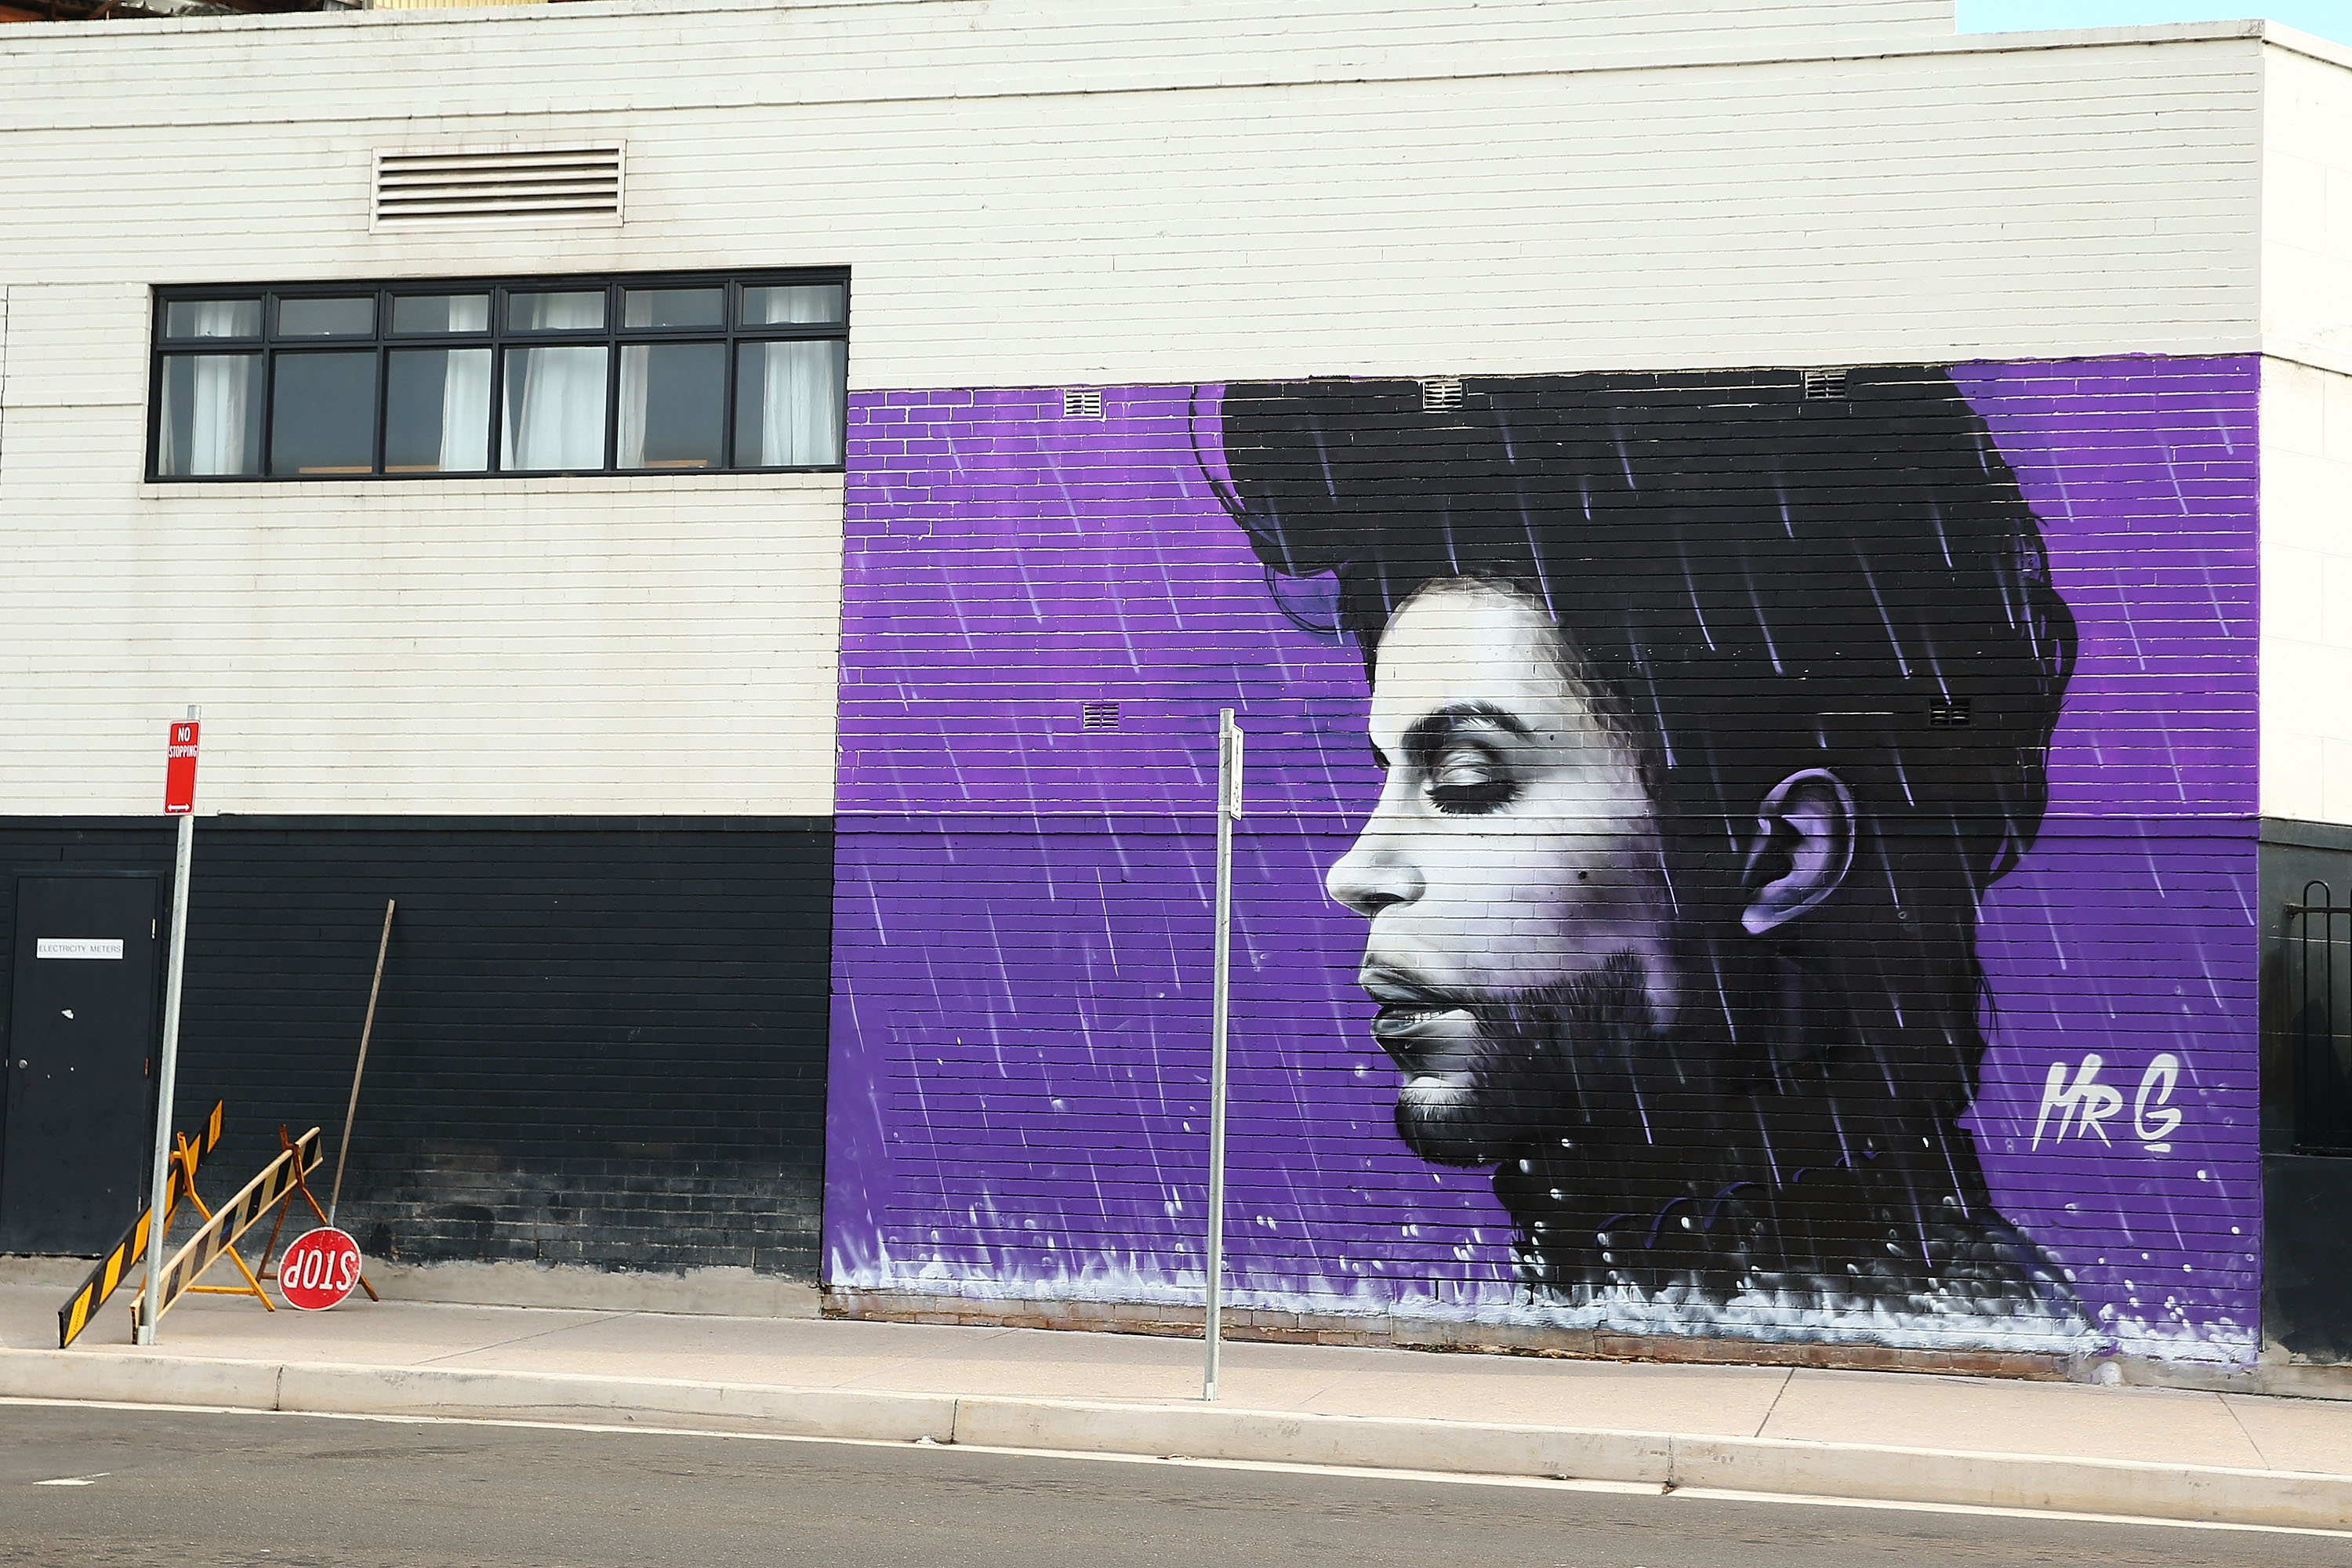 Australian Artist Pays Tribute To Prince With Giant Mural In Sydney